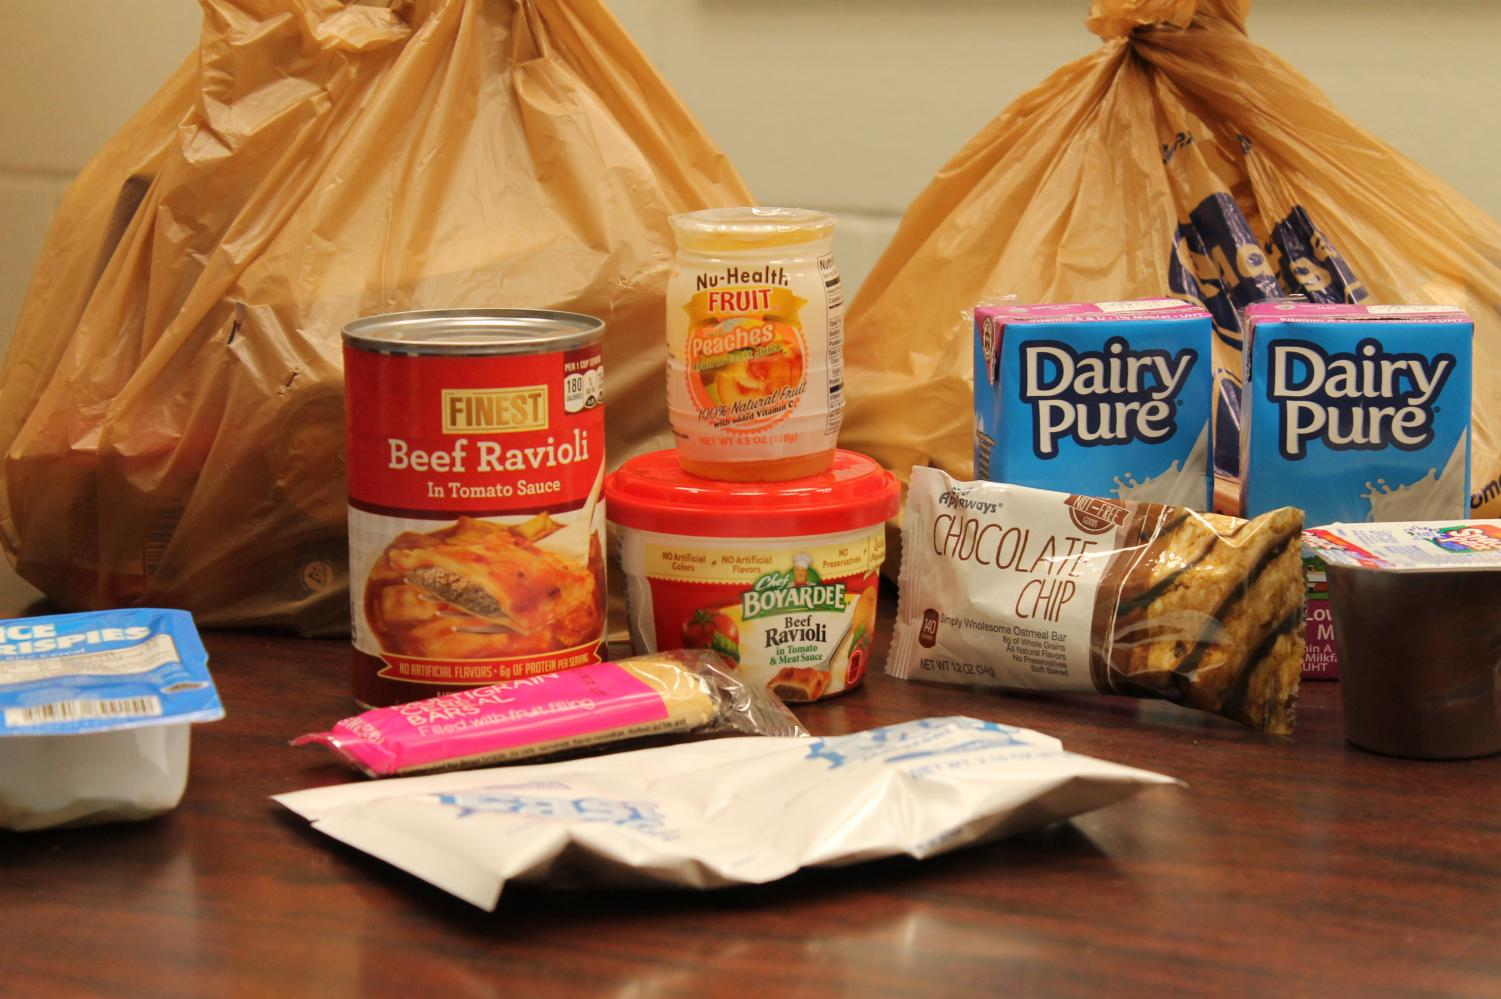 The Weekend Food Program provides bags of food for SRHS students to take home over the weekend.